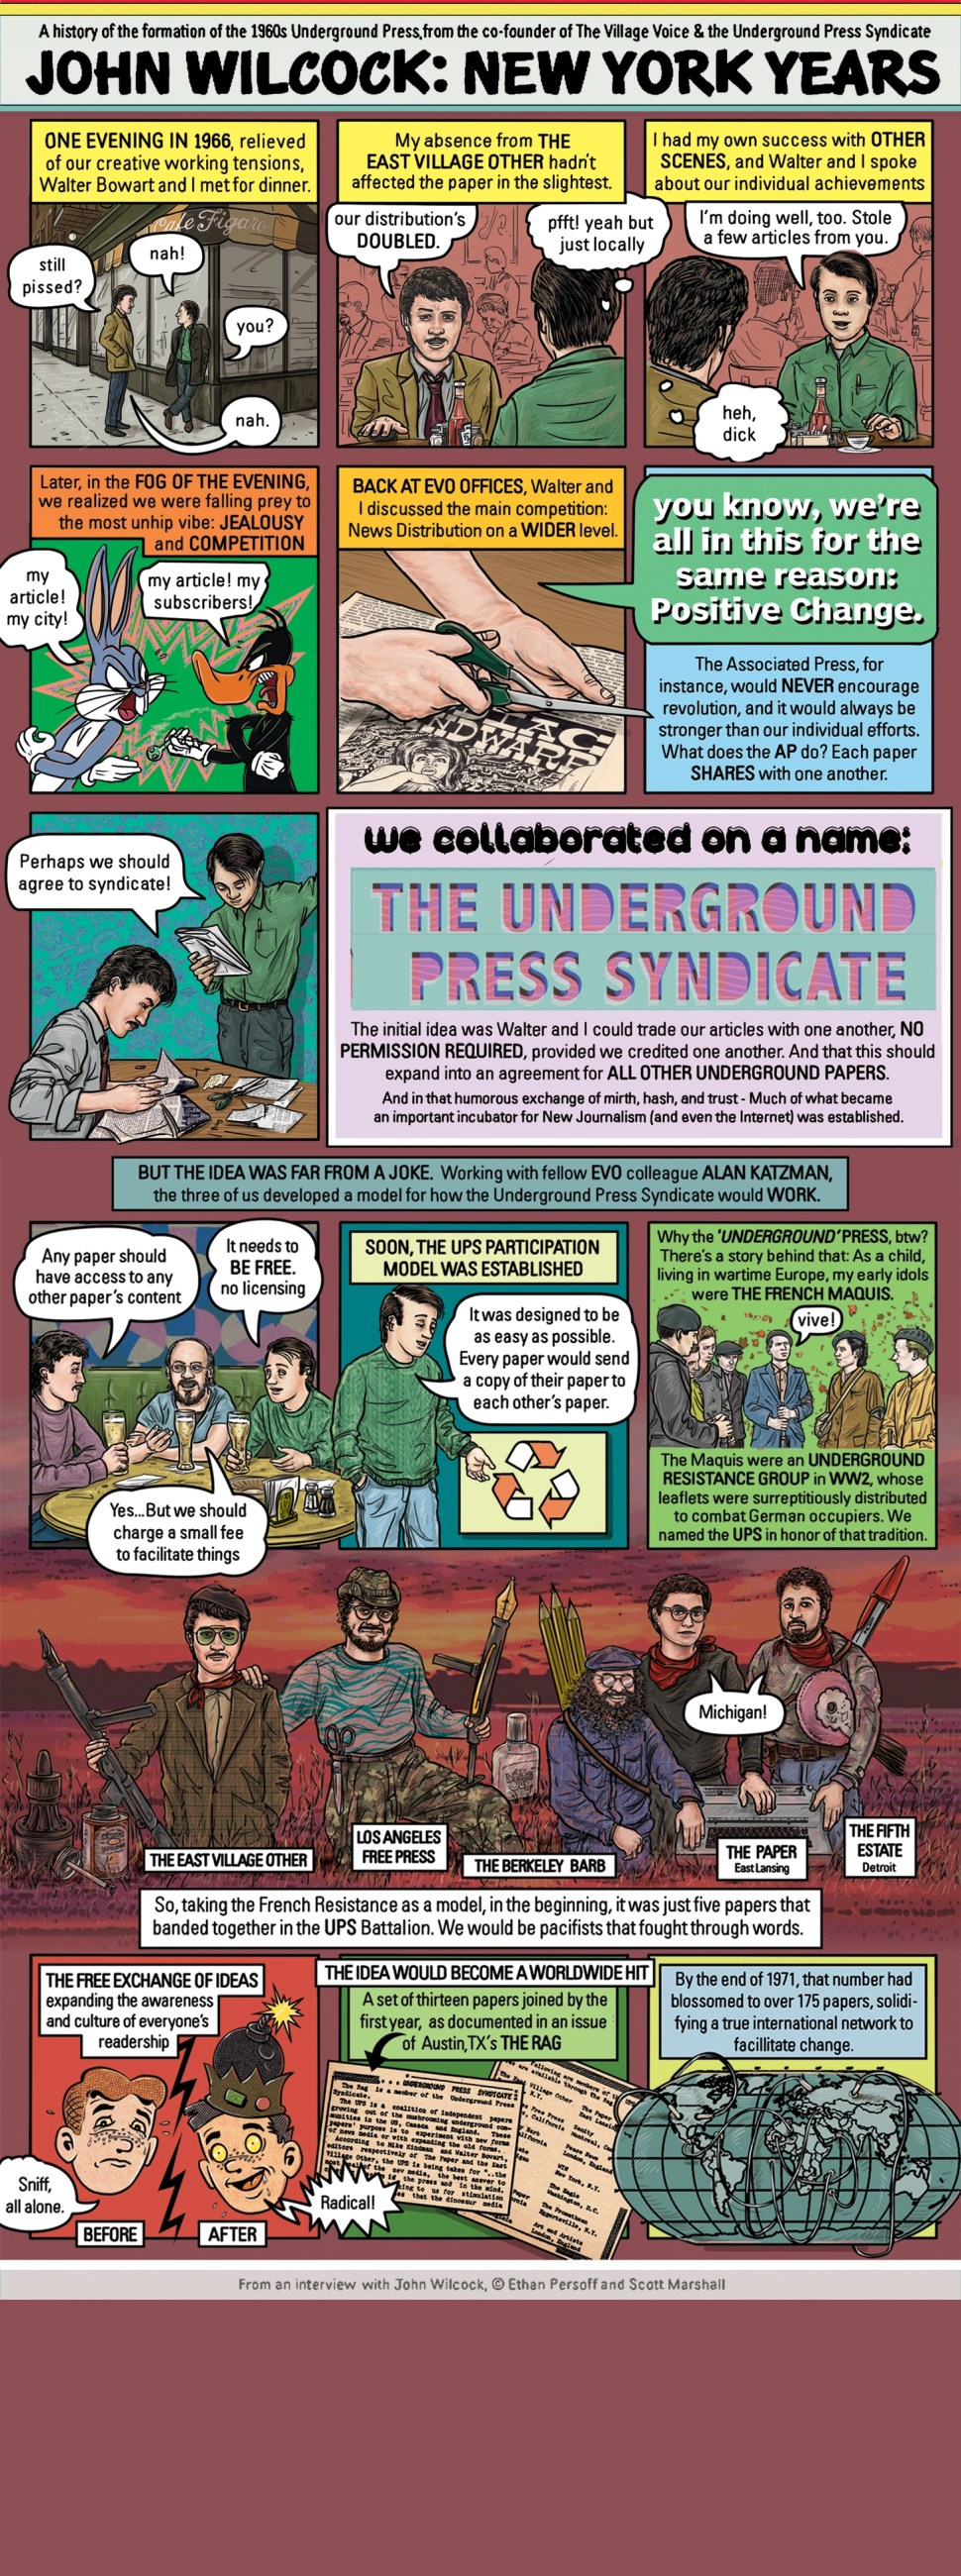 The Underground Press Syndicate (UPS)